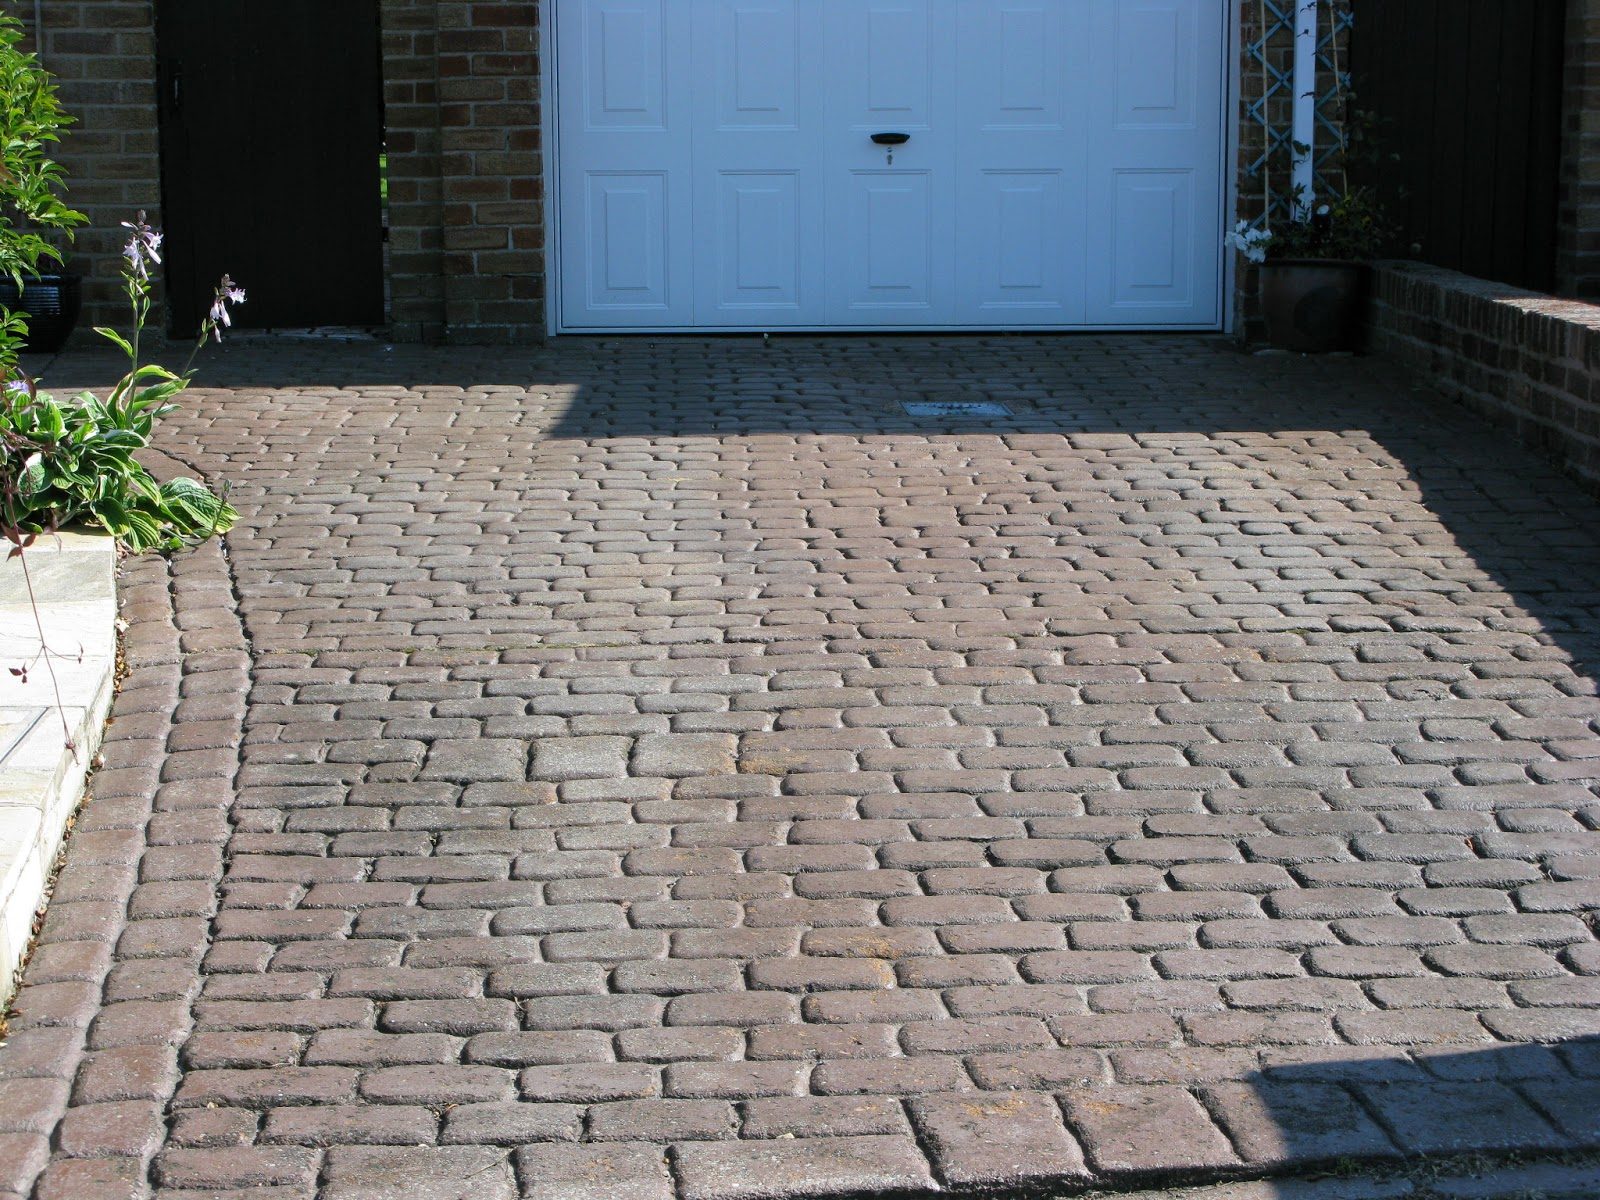 Northern cobblestone blog february 2013 poulton le fylde driveways solutioingenieria Image collections